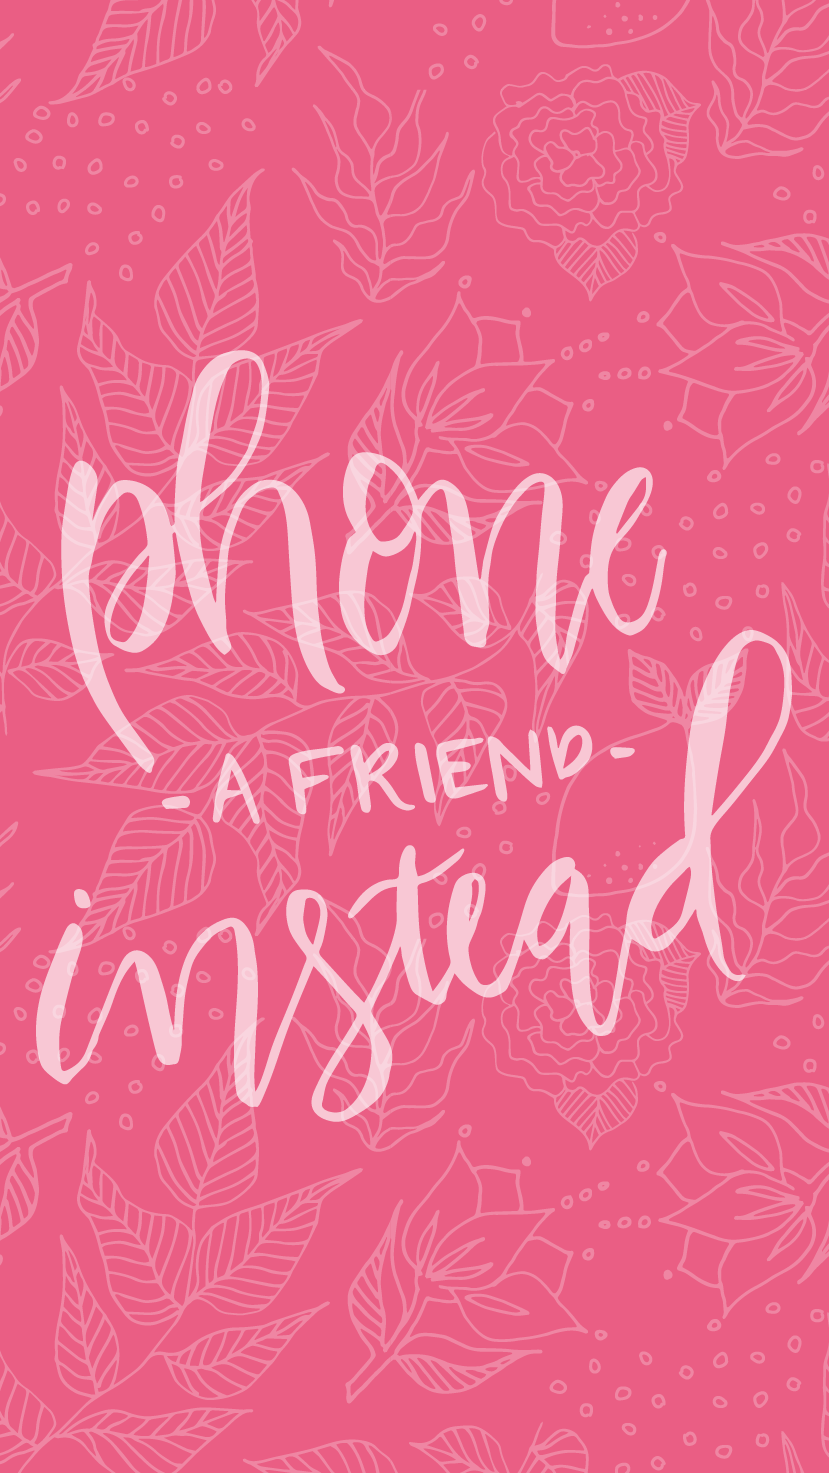 Download the image to use as your screensaver:-)